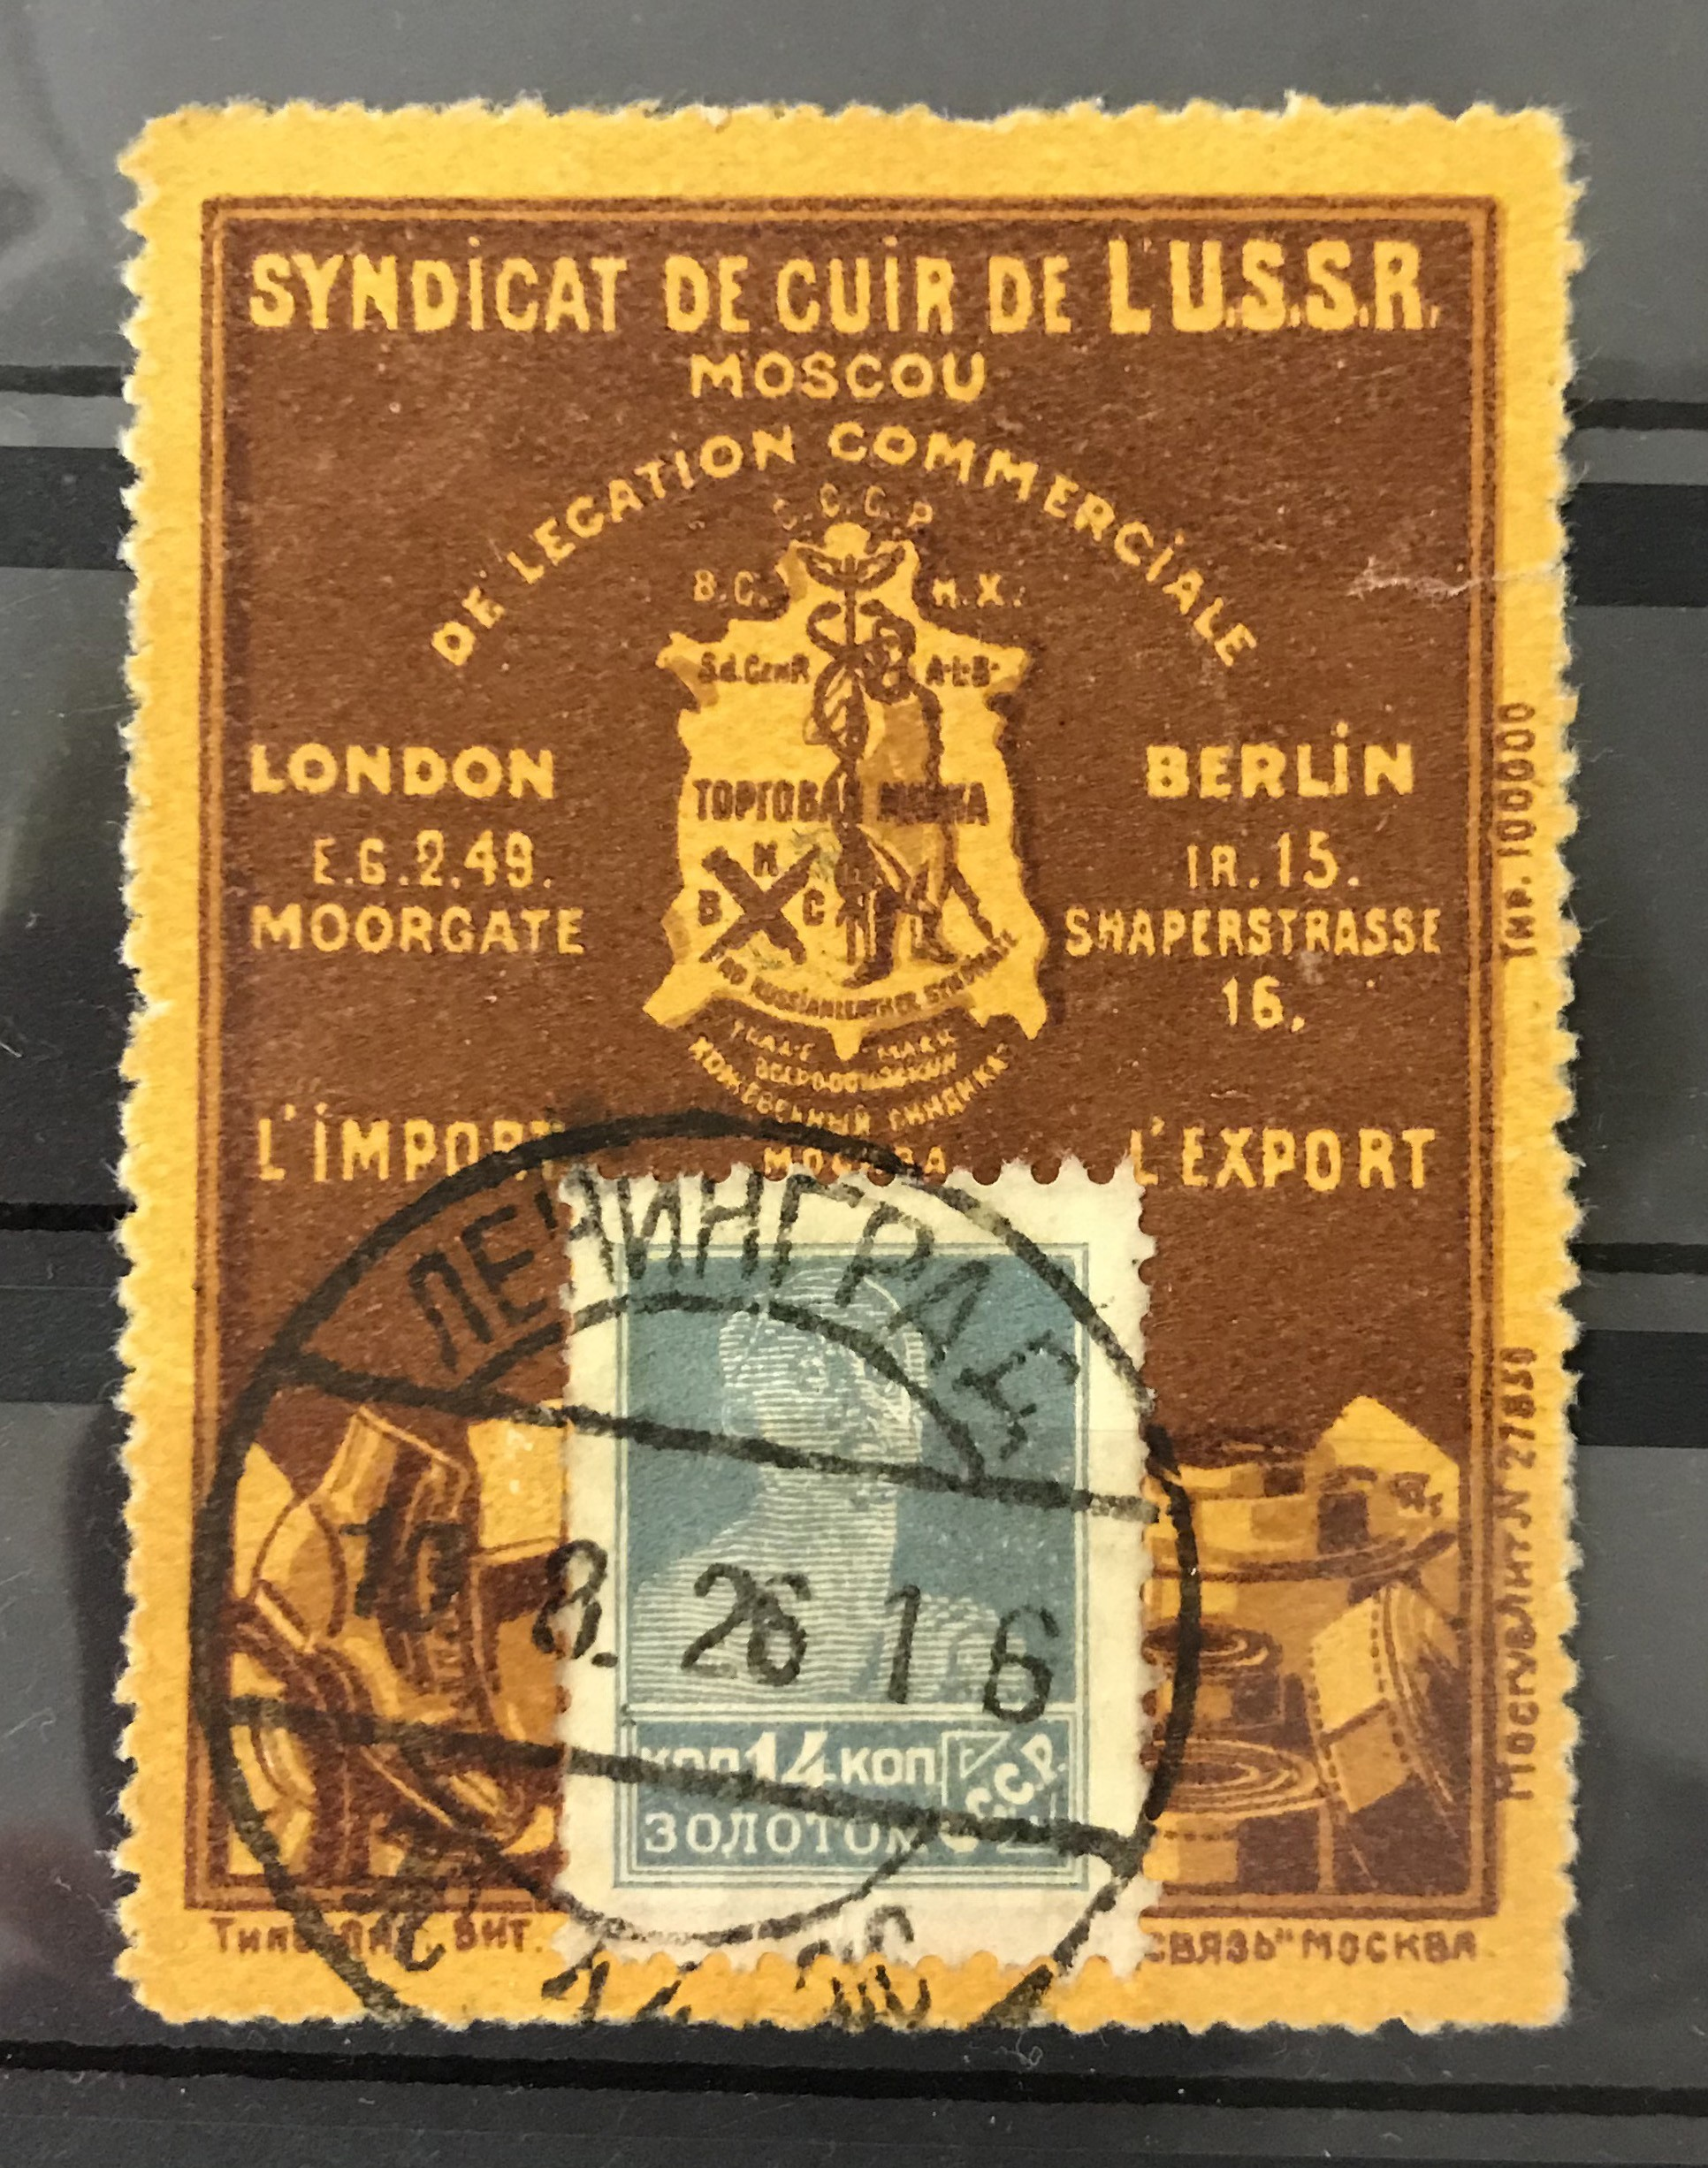 Lot 53 - RUSSIAN ADVERTISING LABEL WITH STAMP - 14 KOP SYNDICAT DE CUIR DE L USSR - MOSCOU